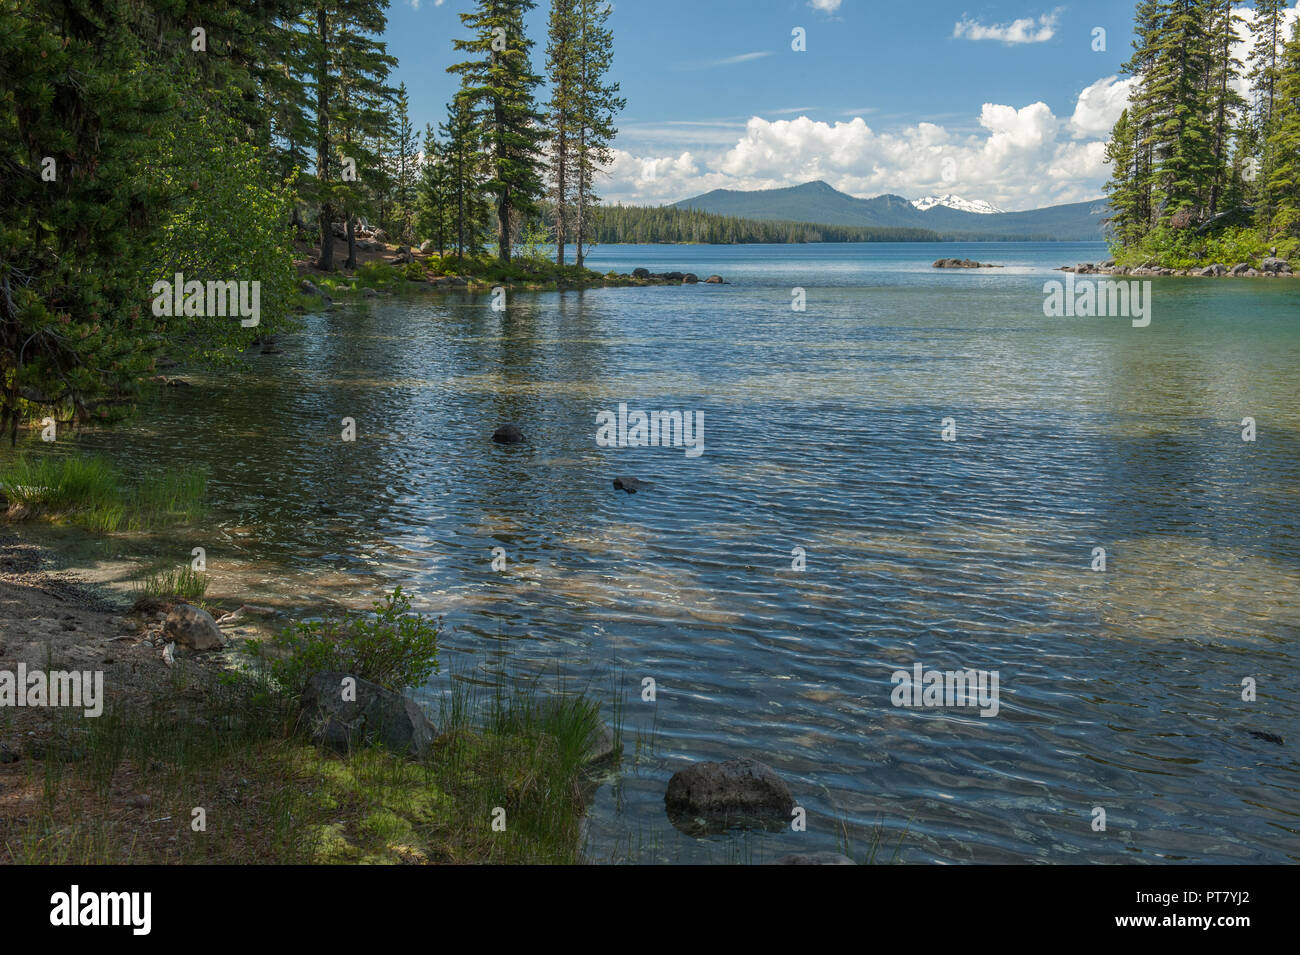 Oregon's Waldo Lake, one of the purest in the world.  Diamond Peak is in the distance. Stock Photo